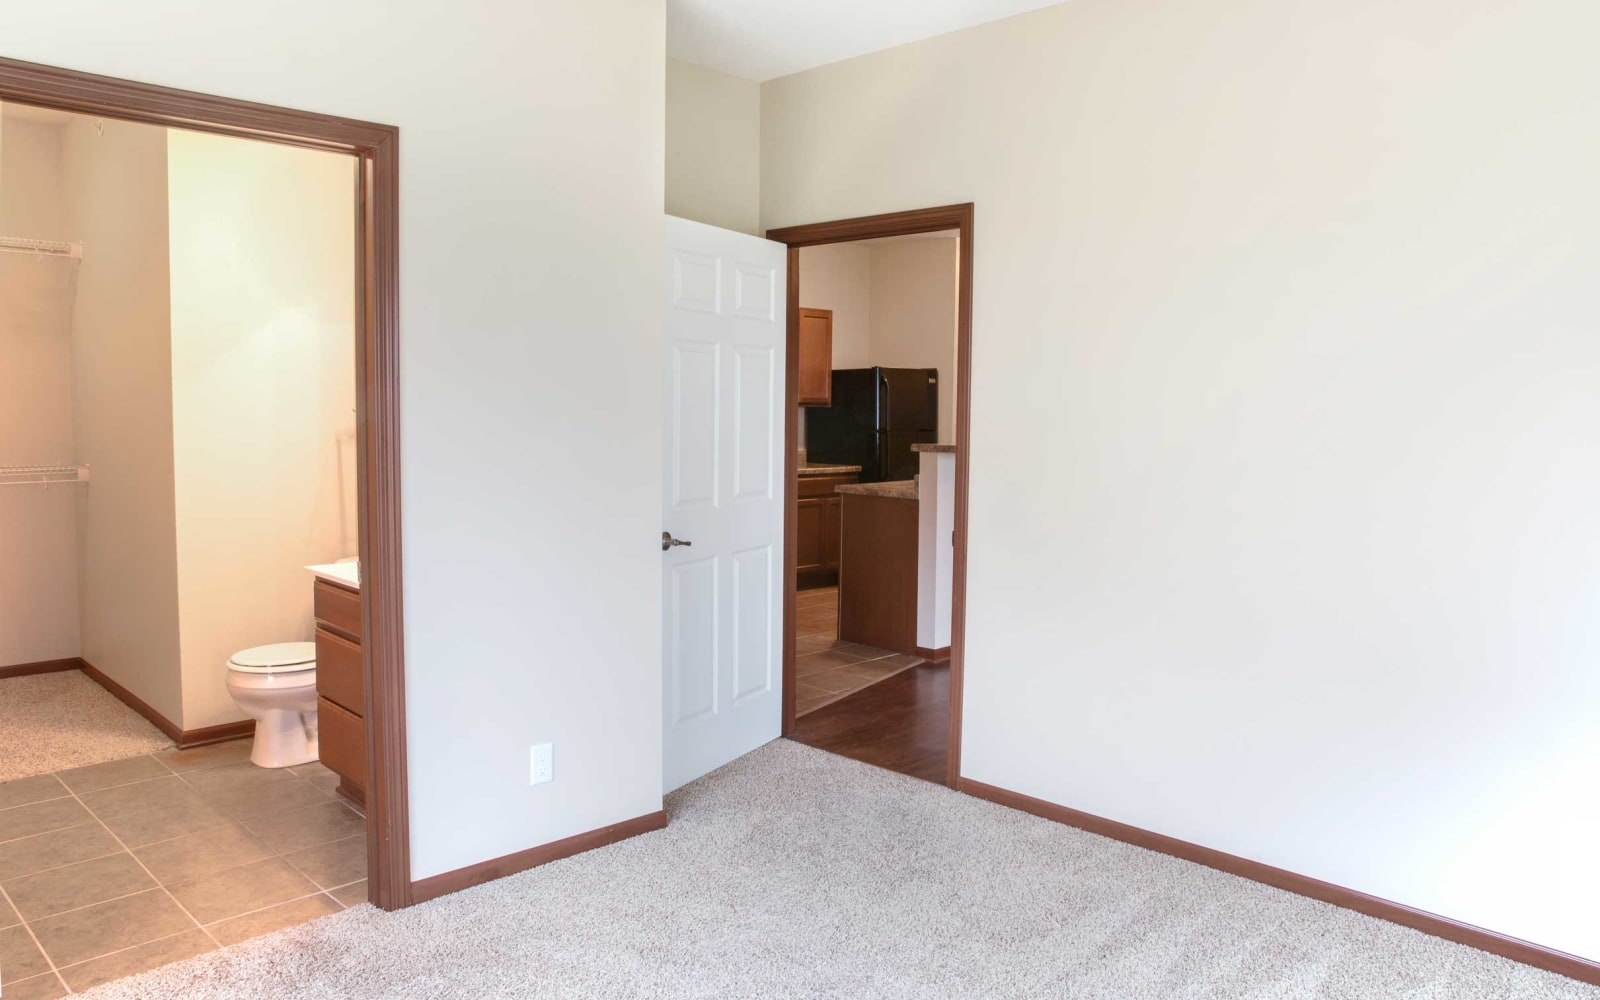 A bedroom to the left of the kitchen with an attached bathroom at Westwood Village in Ames, Iowa